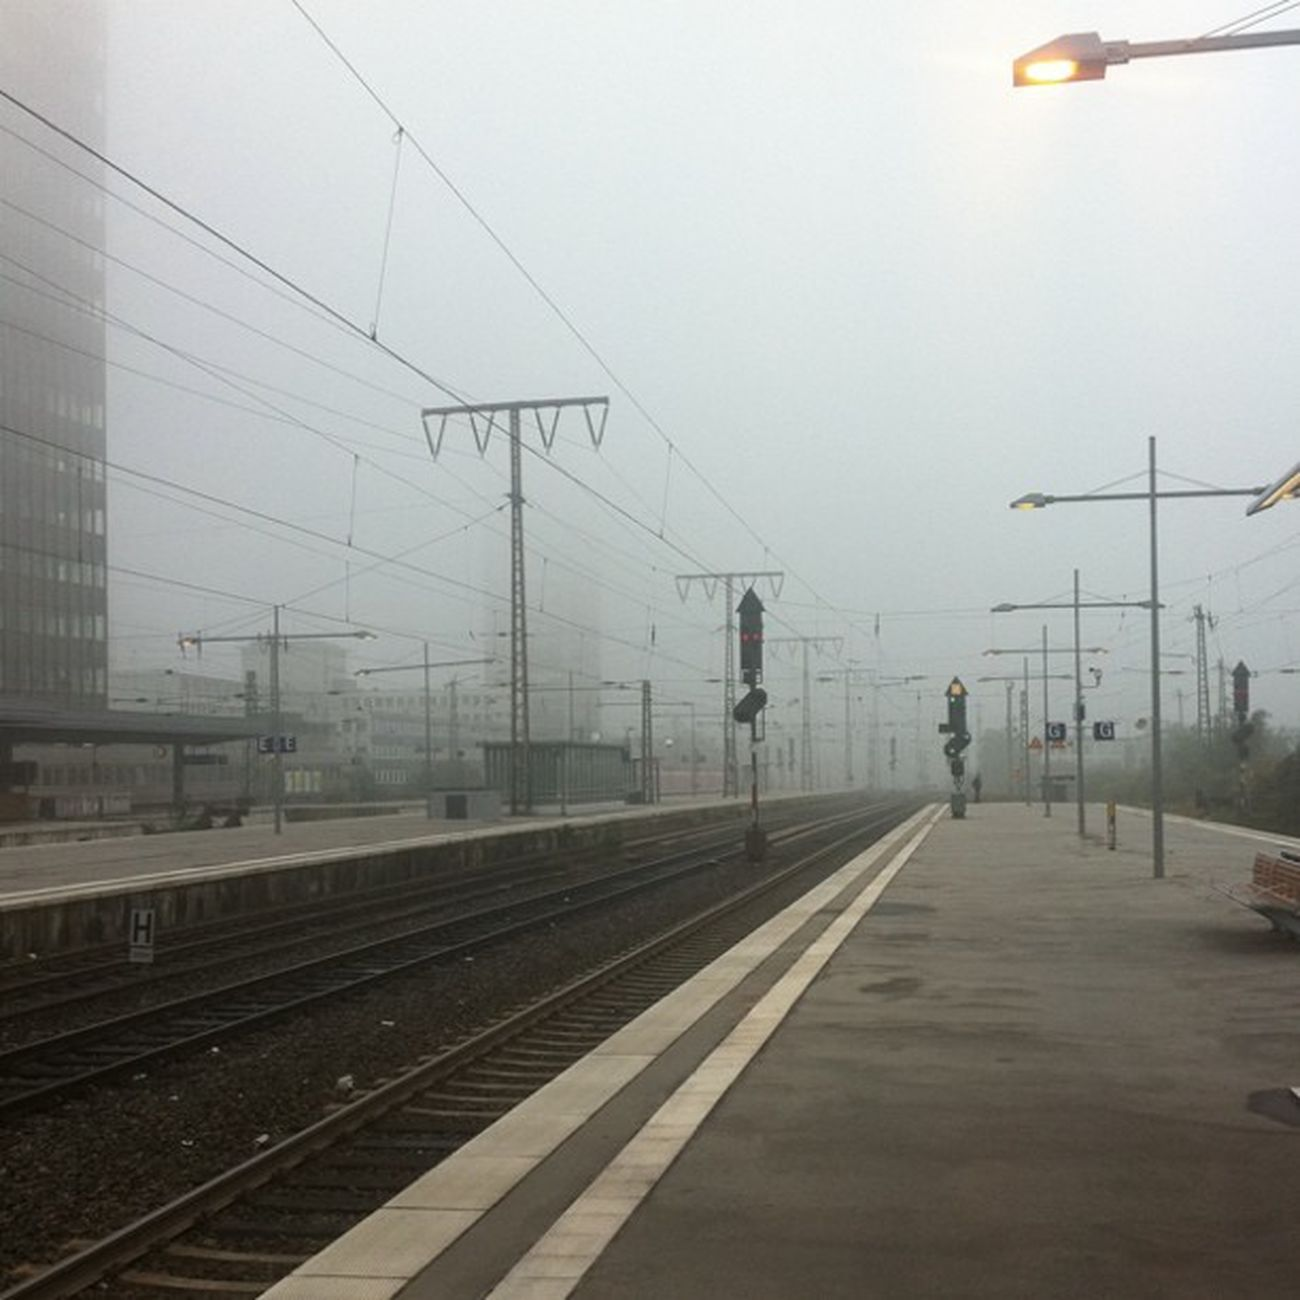 This is London calling ... #Germany #Summer #not Not Summer Germany